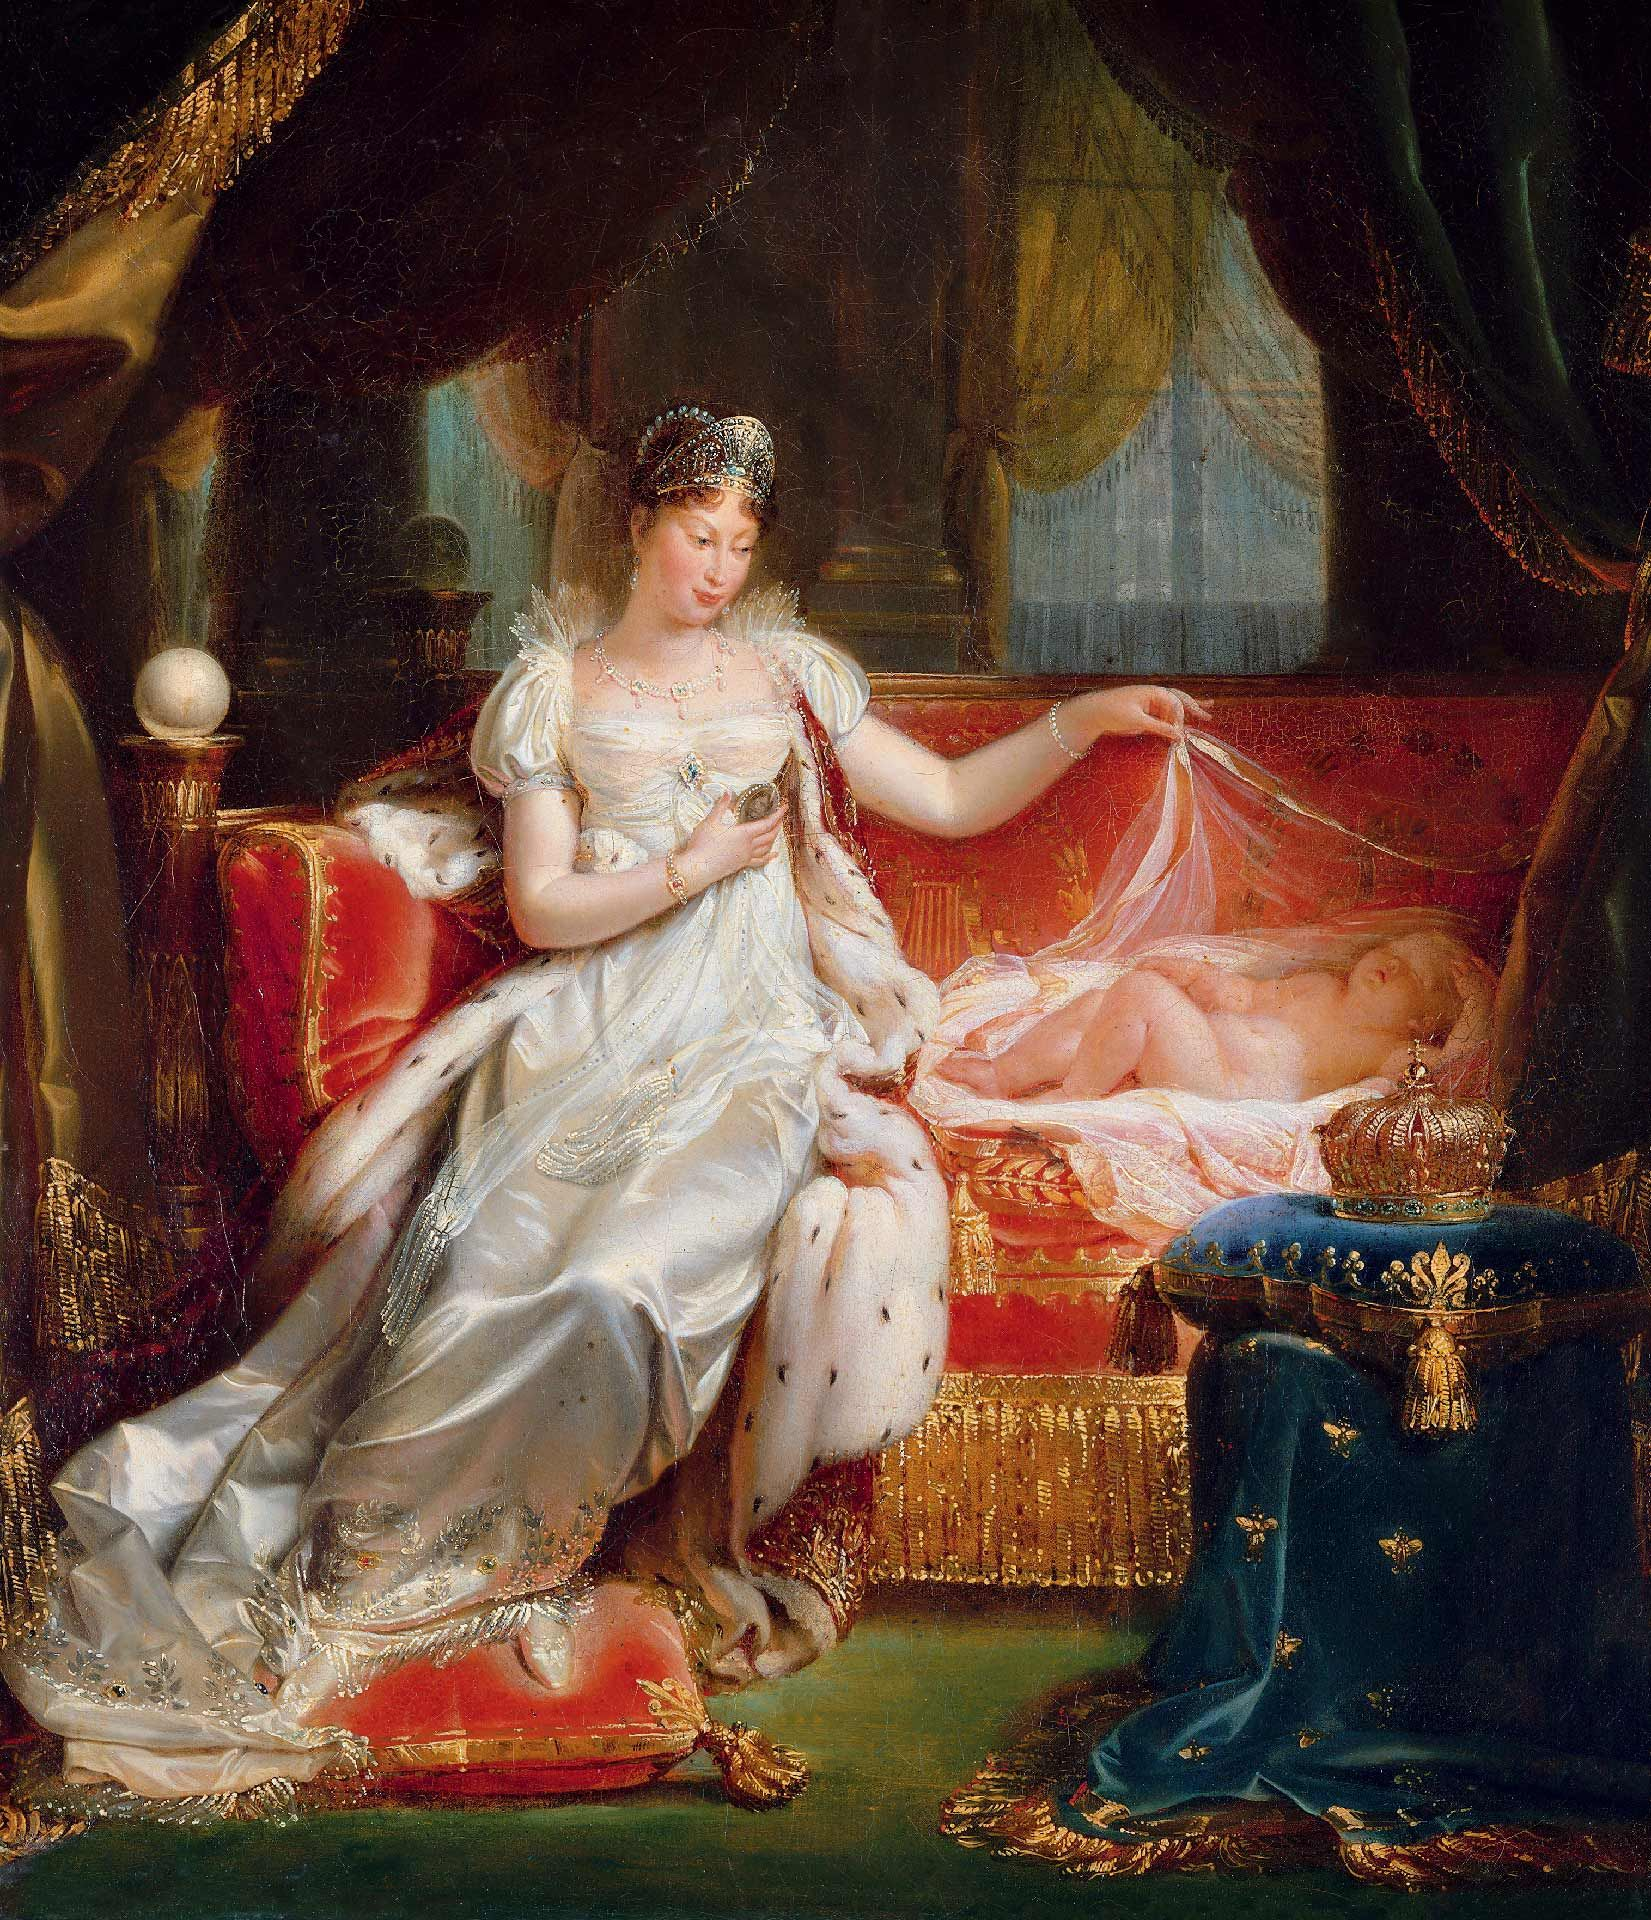 Joseph Franque (1774-1833), The Empress Marie-Louise Watching Over the Sleeping King of Rome, presented at the Salon of 1812, 1811, oil on canvas. Musée national des châteaux de Versailles et de Trianon. © RMN-Grand Palais / Art Resource, NY / Daniel Arnaudet.